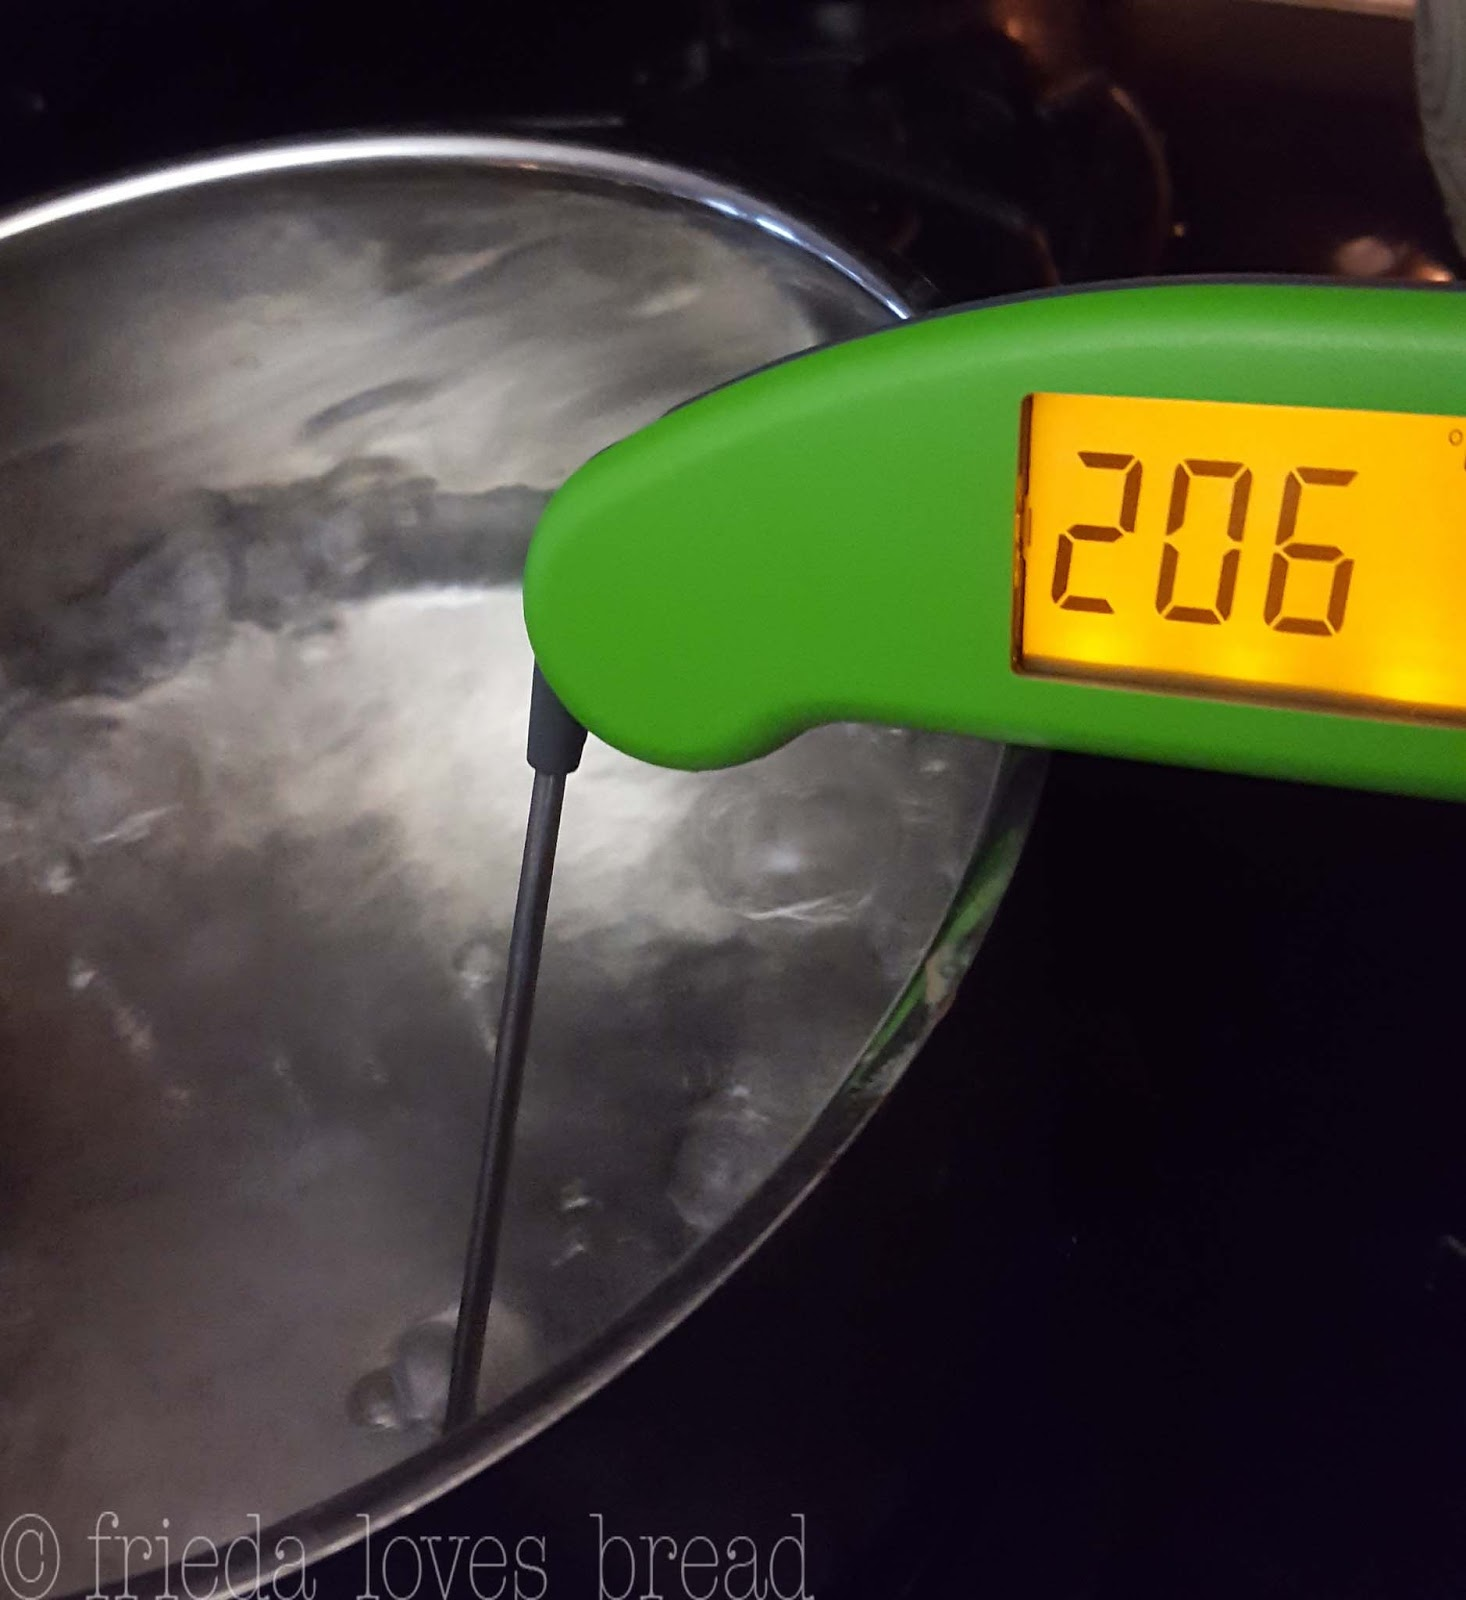 Frieda Loves Bread Thermapen Digital Food Thermometer A